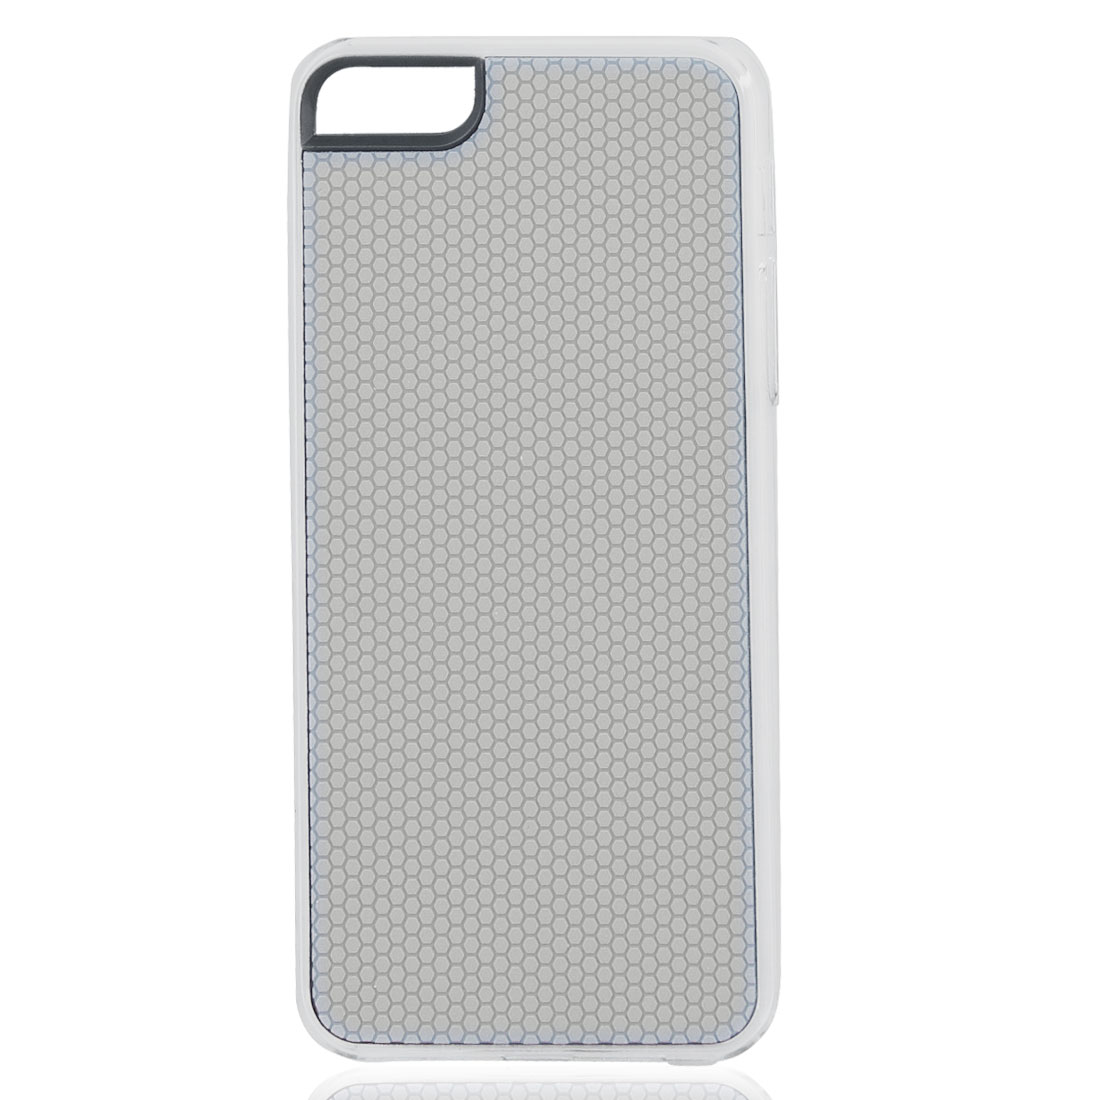 Gray Hexagons Pattern Hard Back Case Cover Skin for iPhone 5 5G